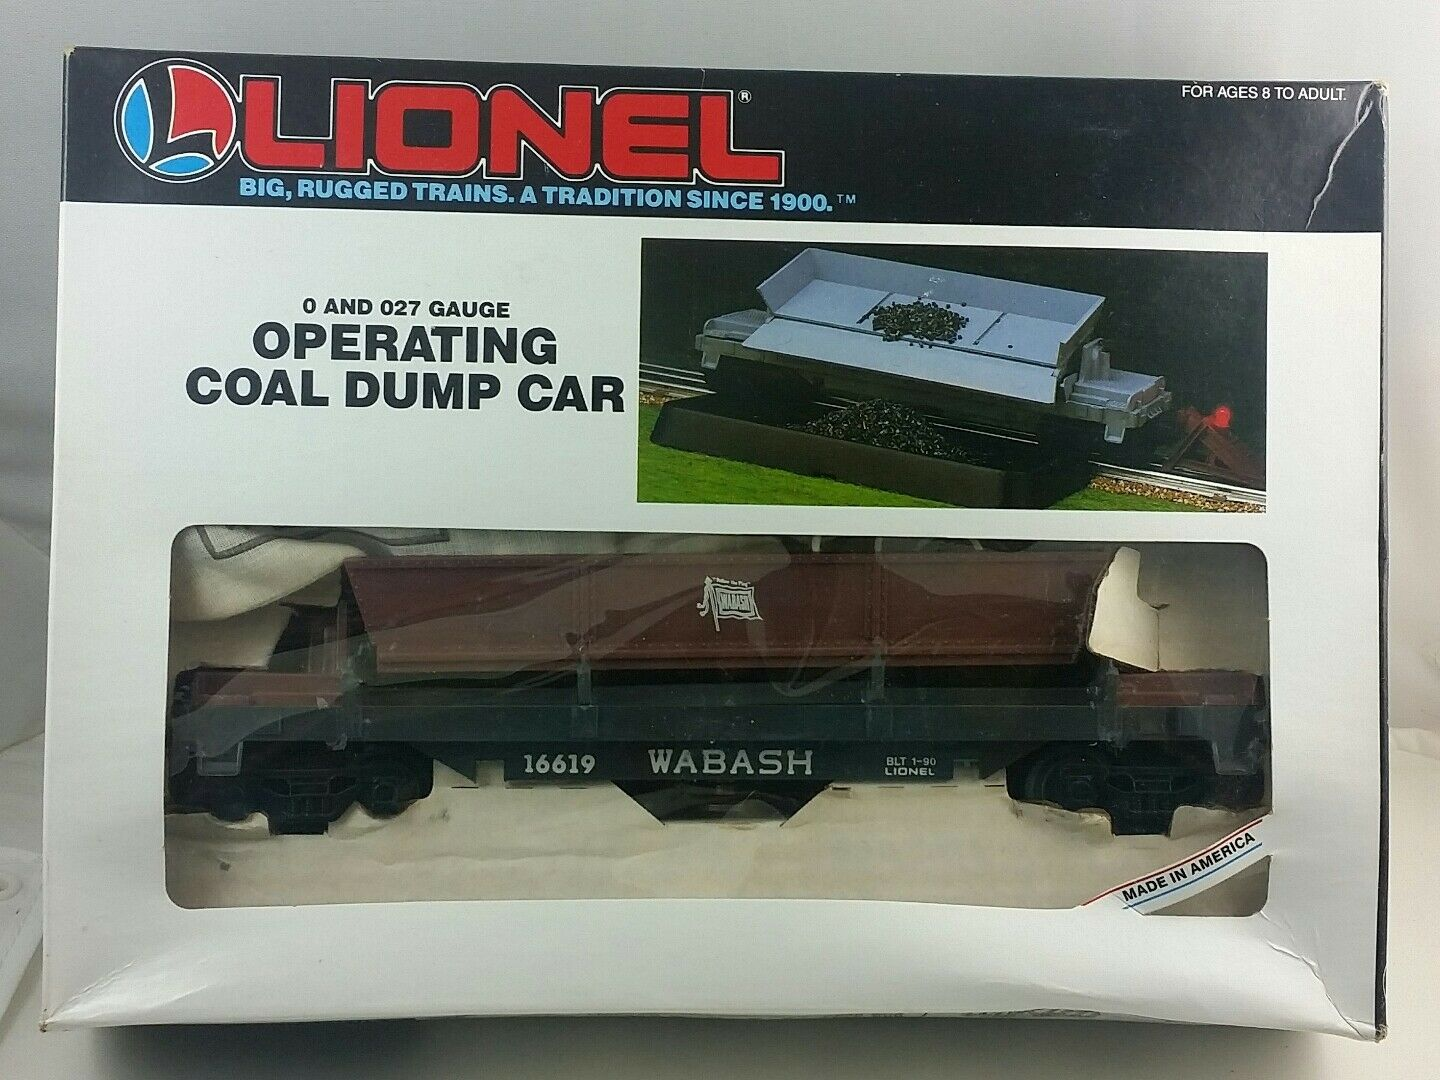 Vintage 1986 Lionel Wabash 6-16619 Operating Coal Dump Car, Made in USA, New